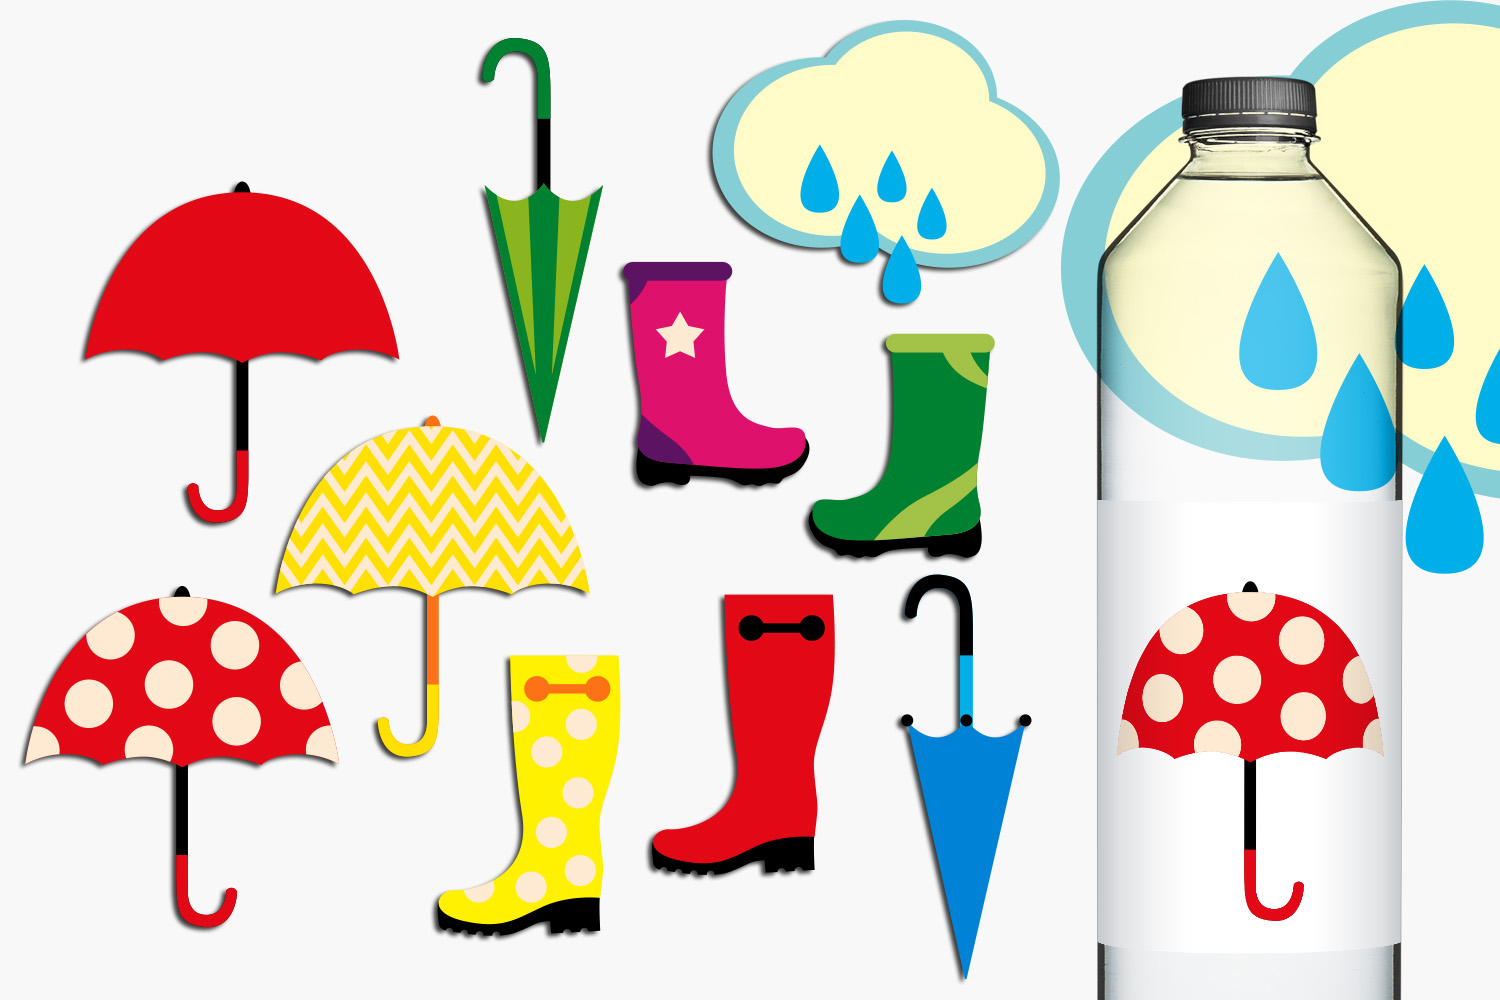 Download Free Rain Boots And Umbrellas Graphic By Revidevi Creative Fabrica for Cricut Explore, Silhouette and other cutting machines.